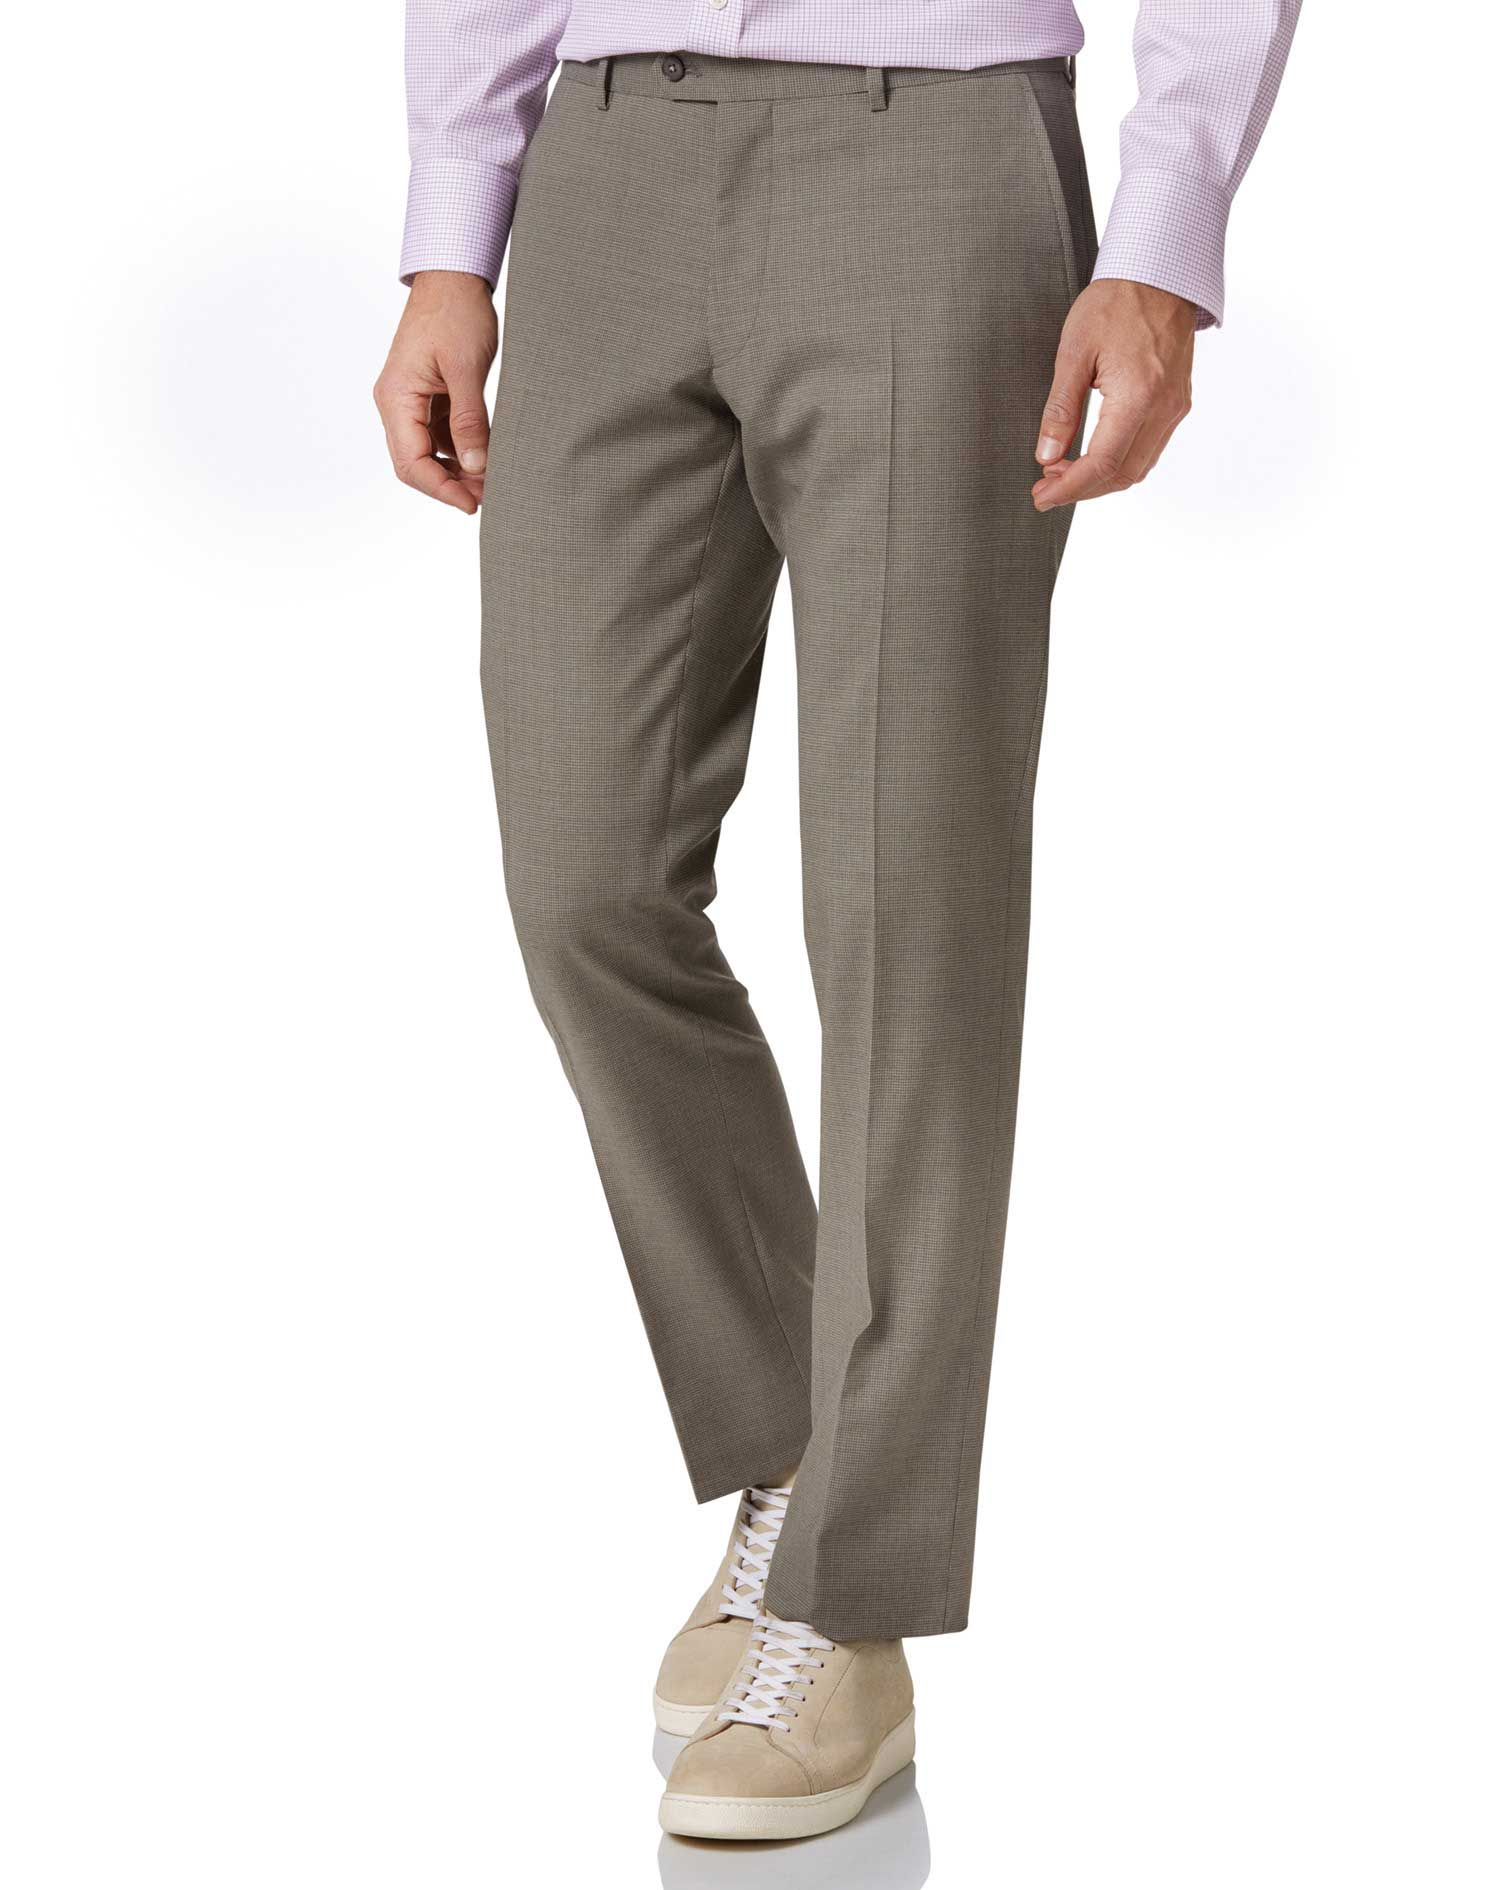 Natural Puppytooth Slim Fit Panama Business Suit Trouser Size W32 L32 by Charles Tyrwhitt